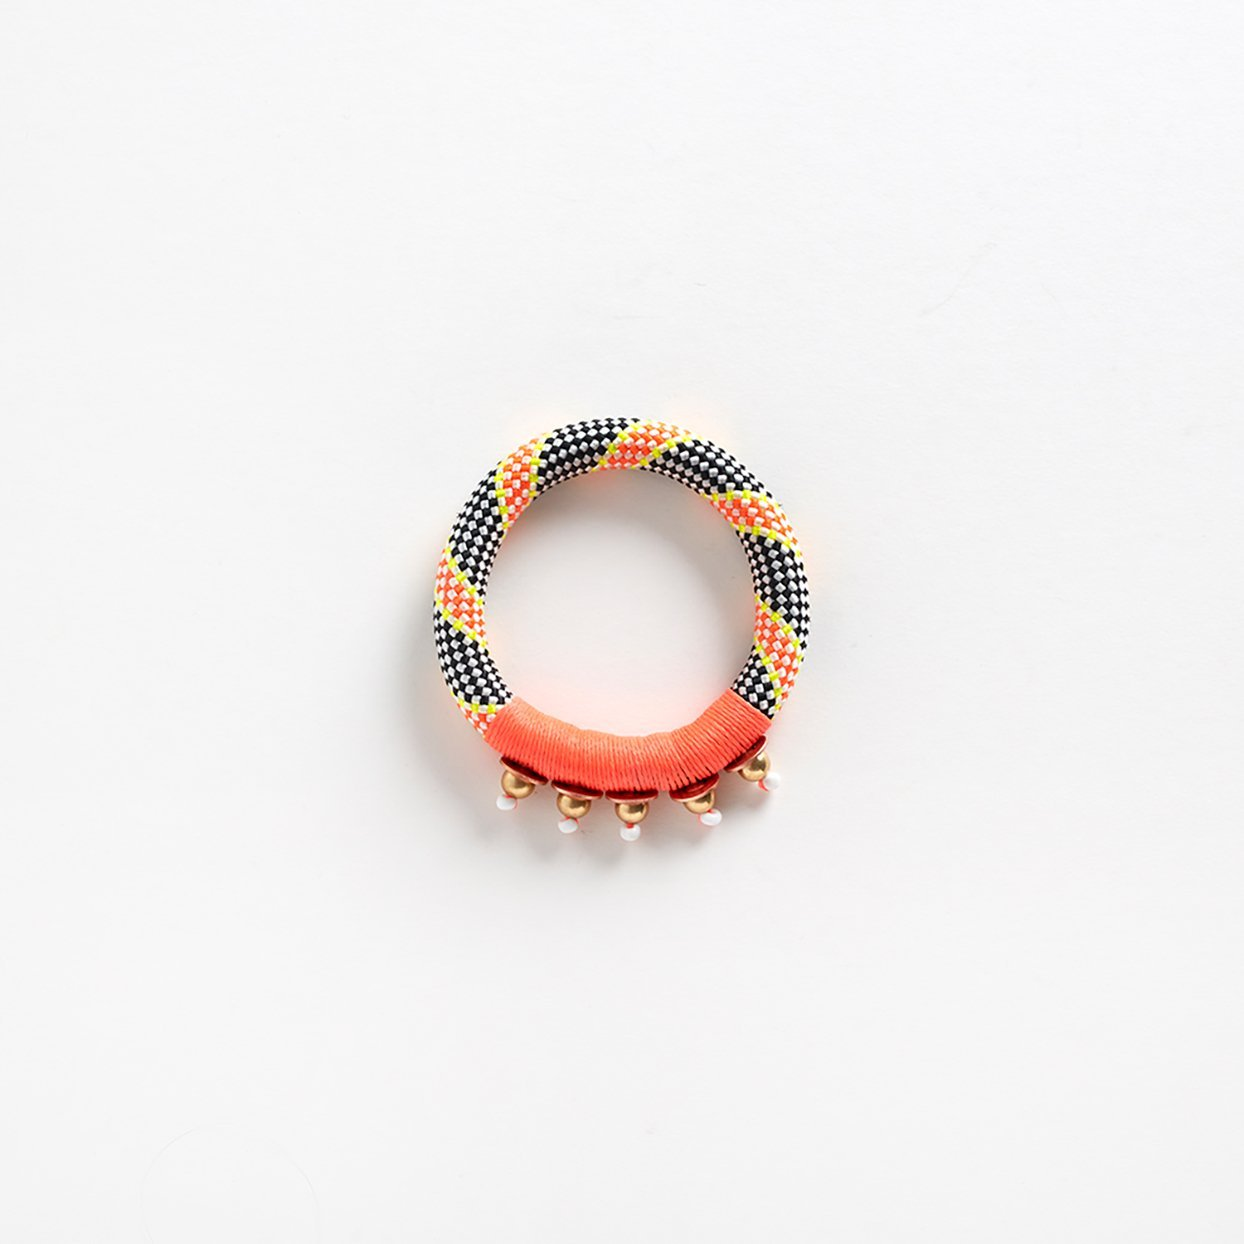 Dynamic Plenty Bracelet Pichulik Bracelet - White Label Project